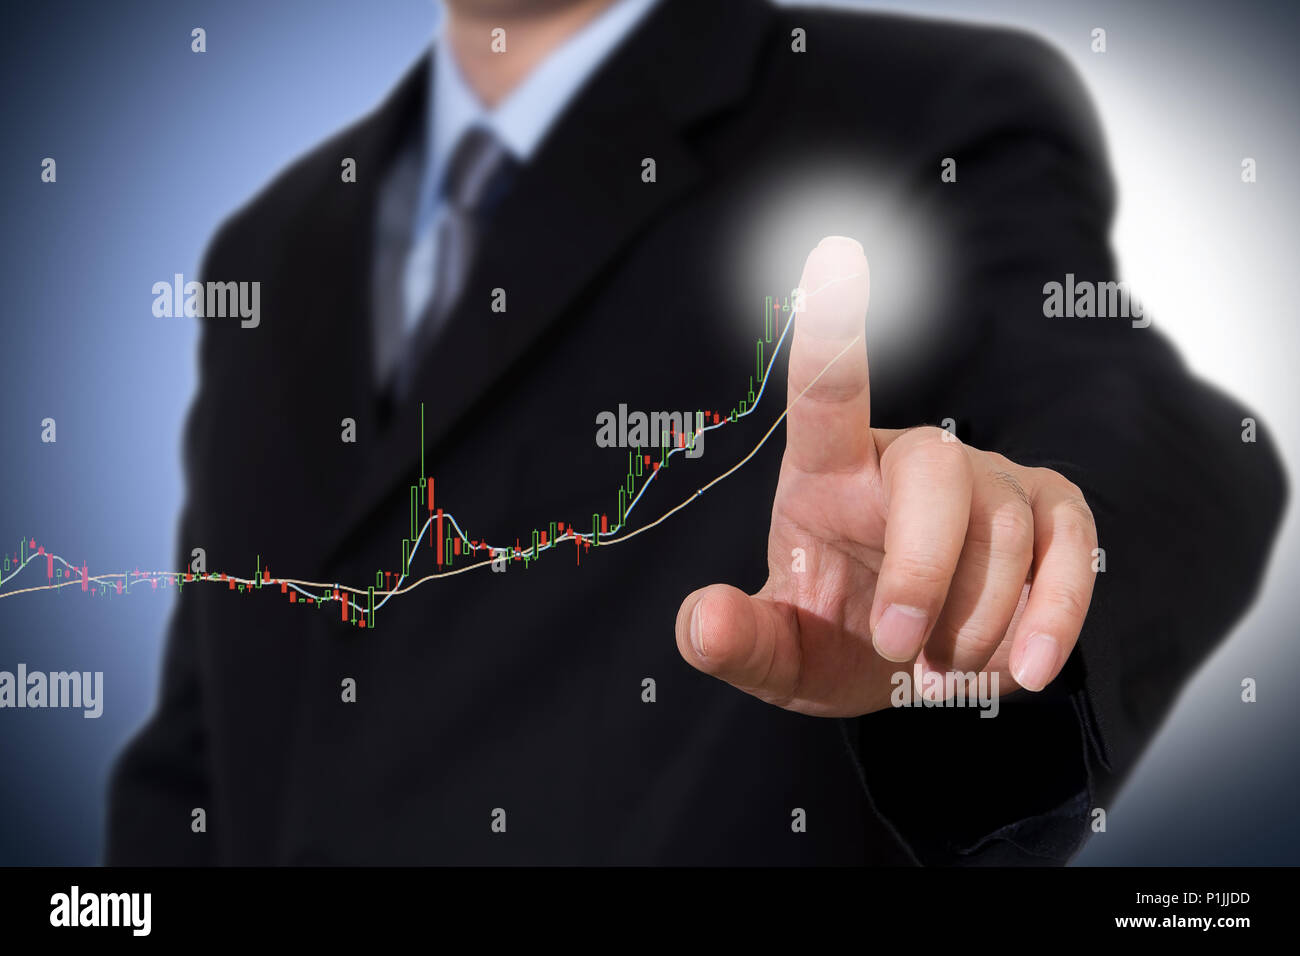 Businessman Touching a Graph Indicating Growth. - Stock Image